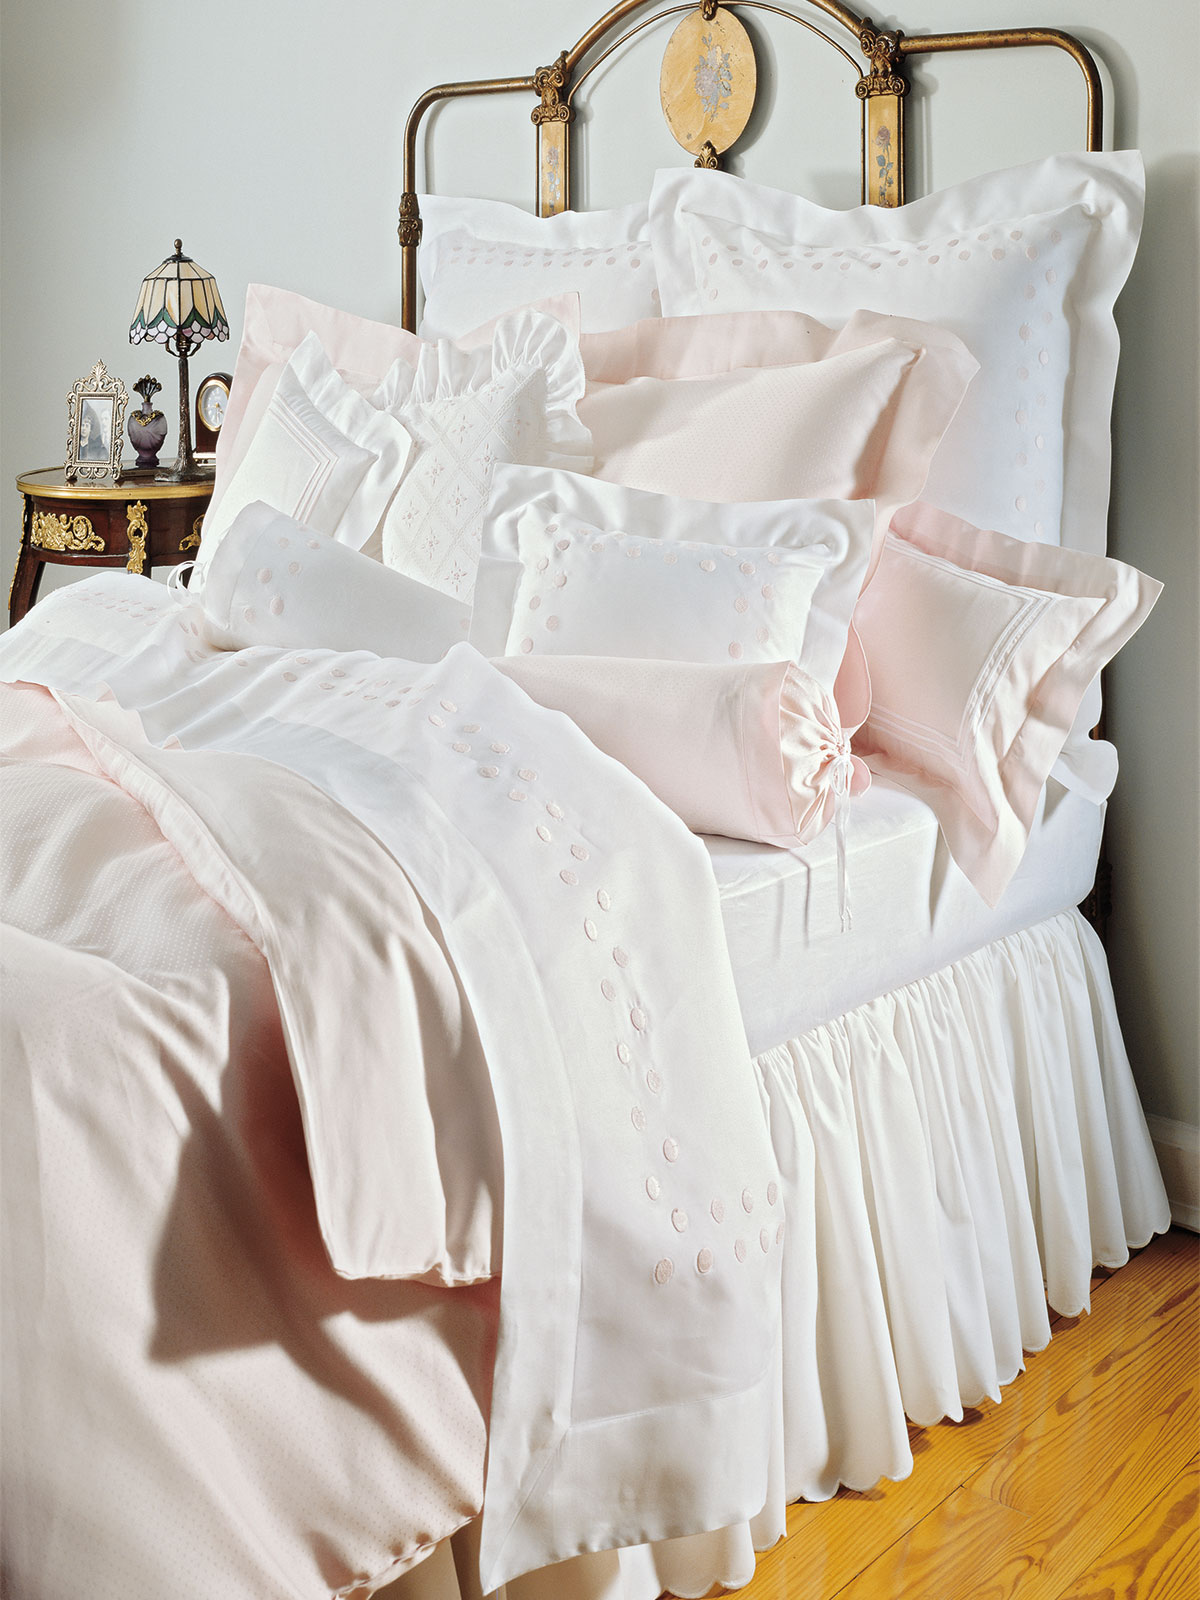 Claire De Lune Luxury Bedding Italian Bed Linens